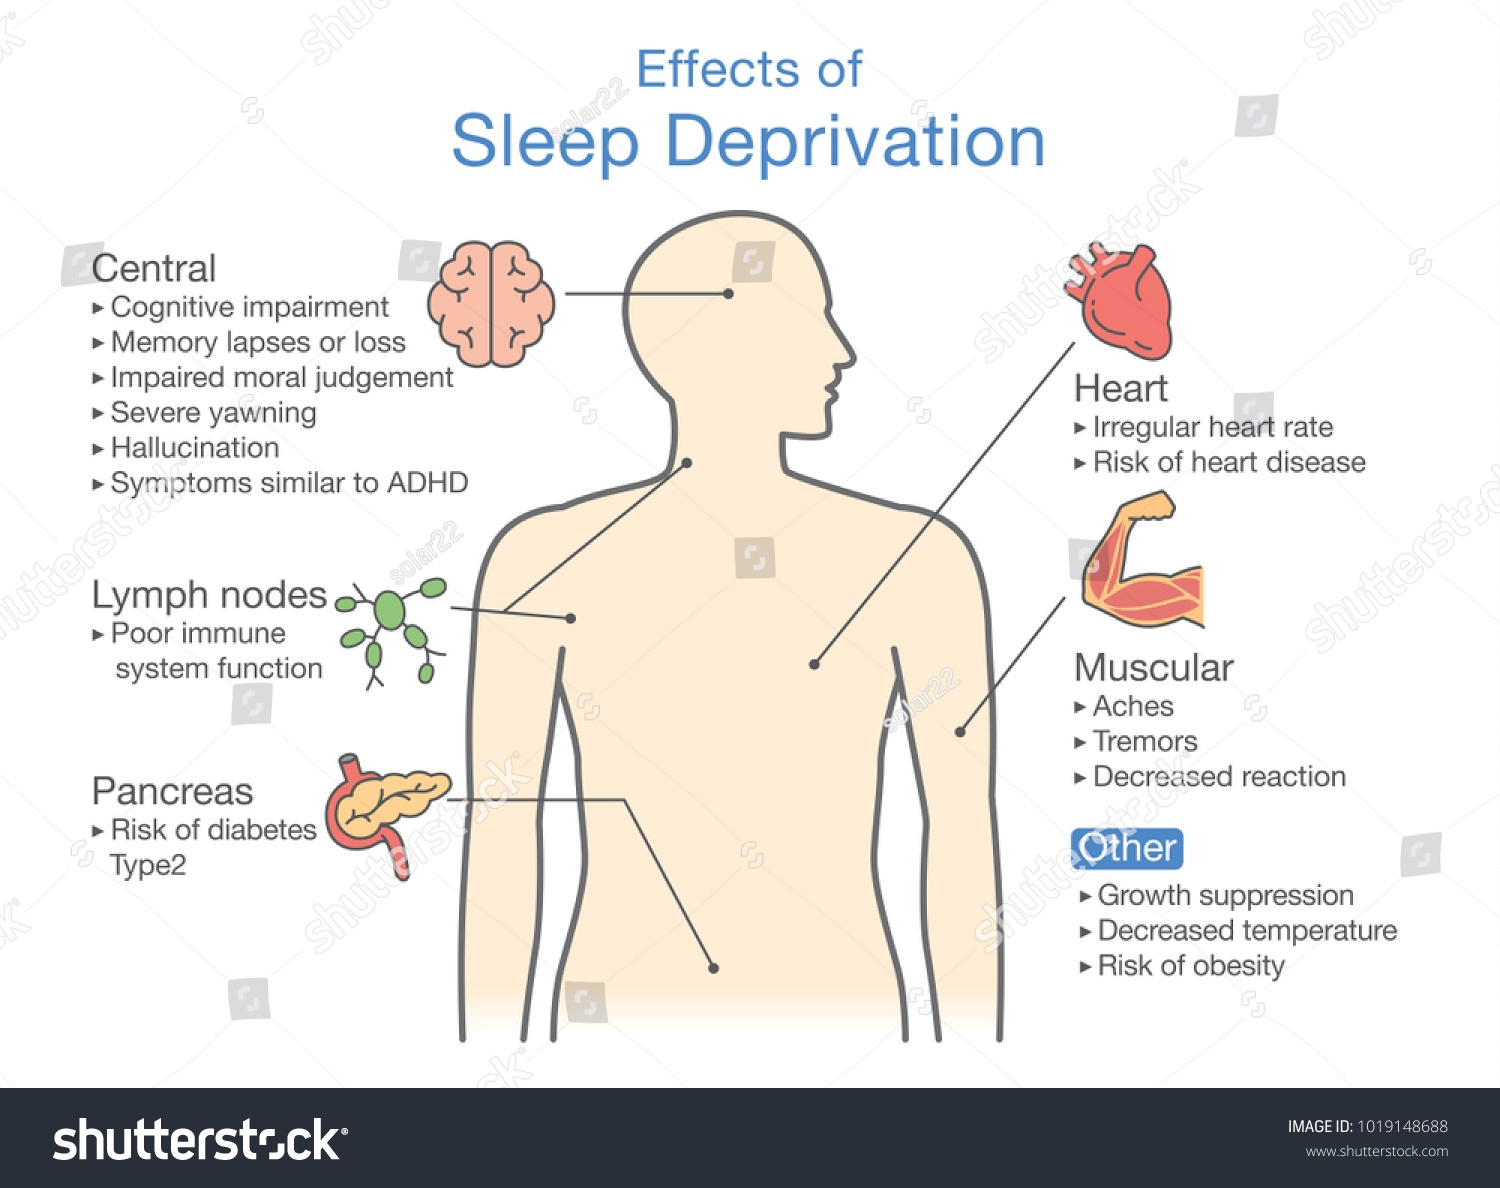 Effects of Sleep Diprivation